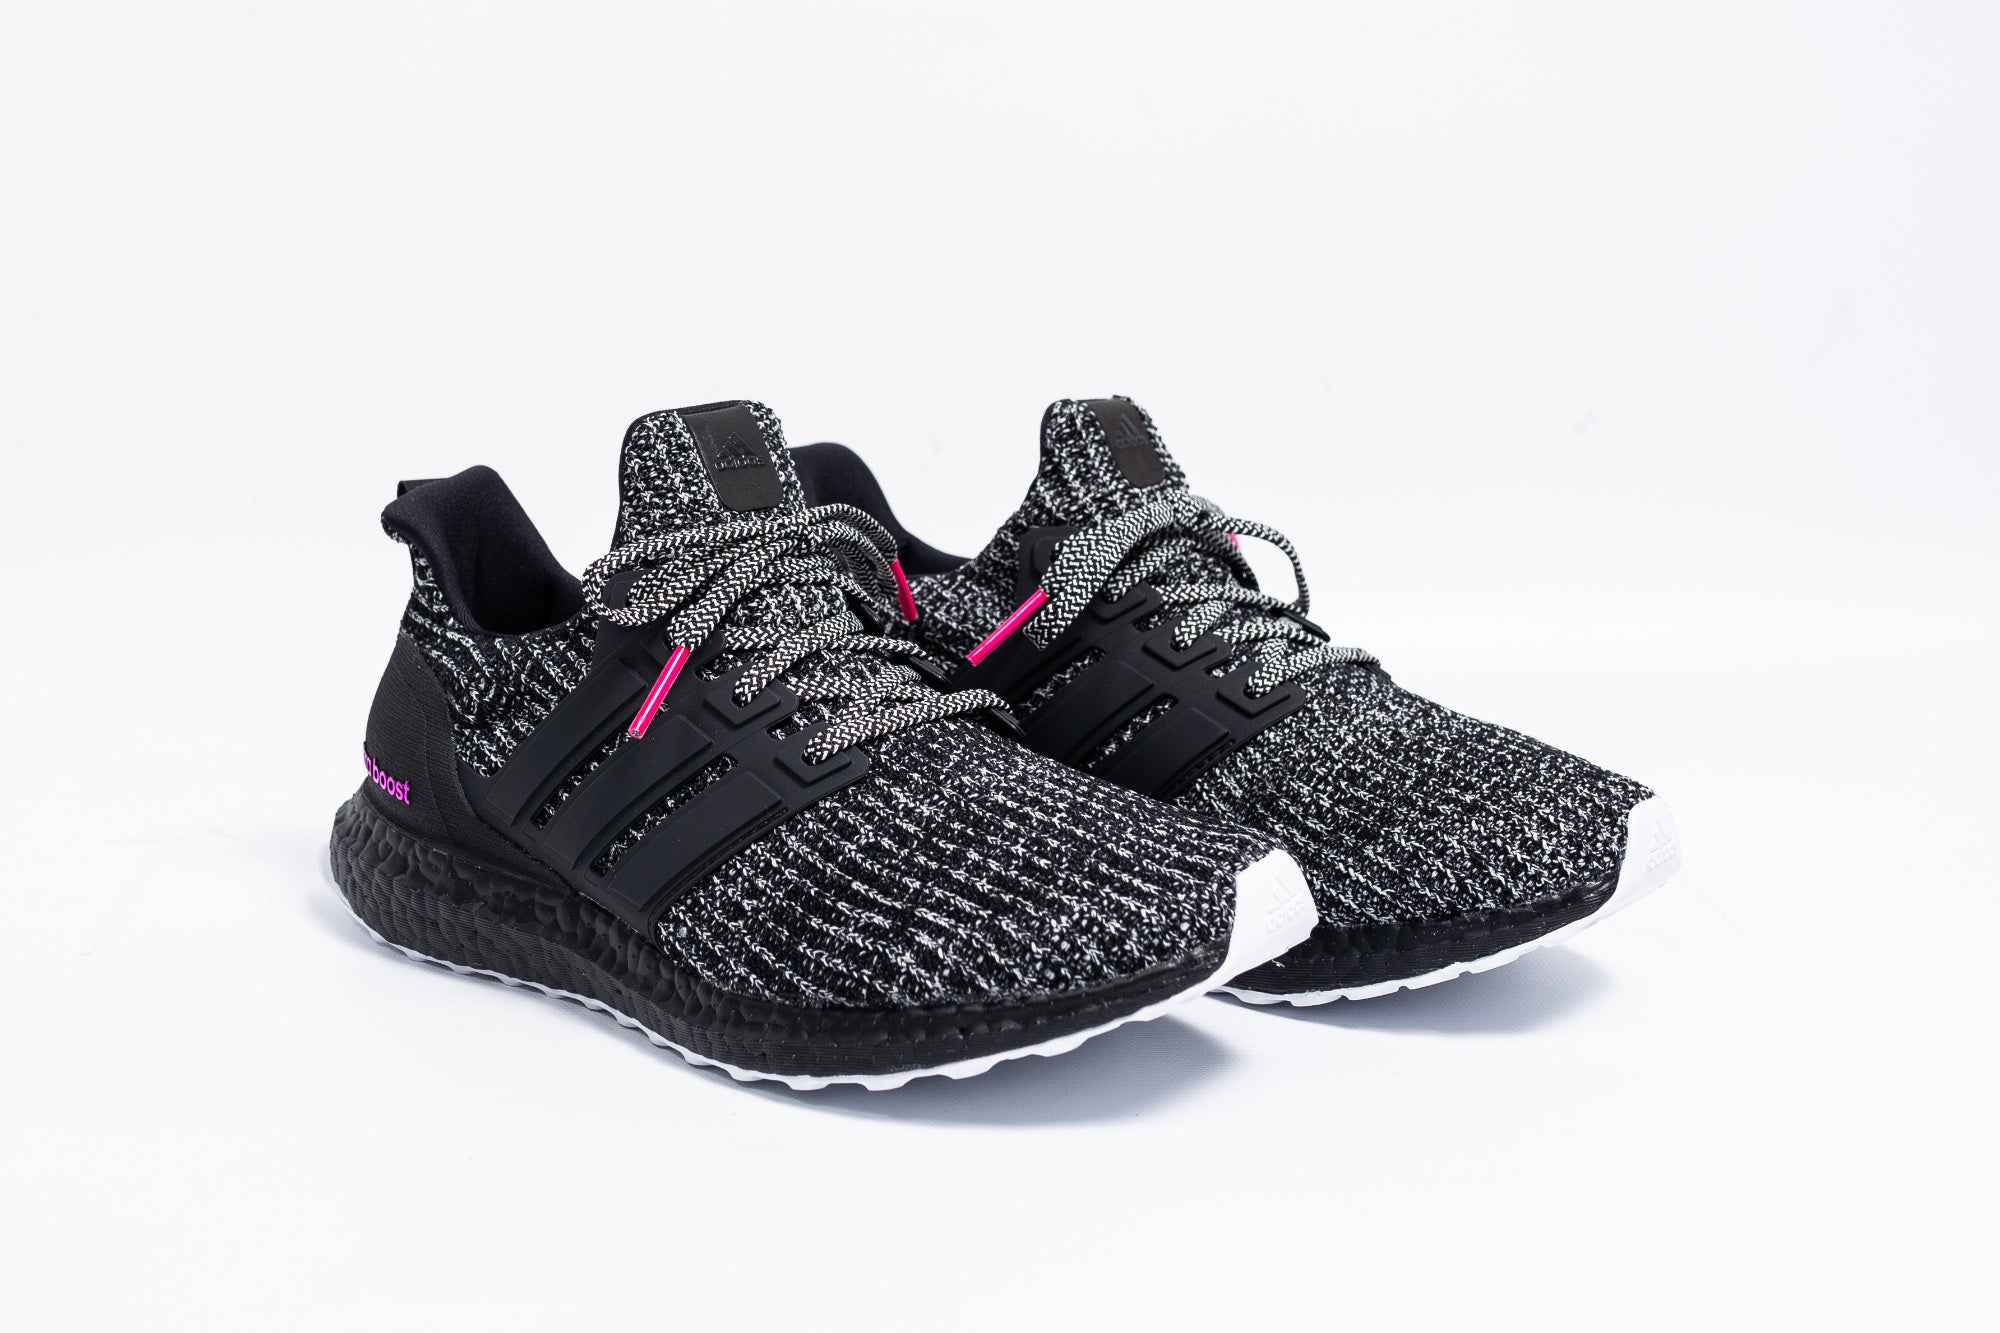 2dcd004cd9a81 ADIDAS ULTRA BOOST CANCER AWARENESS – PACKER SHOES